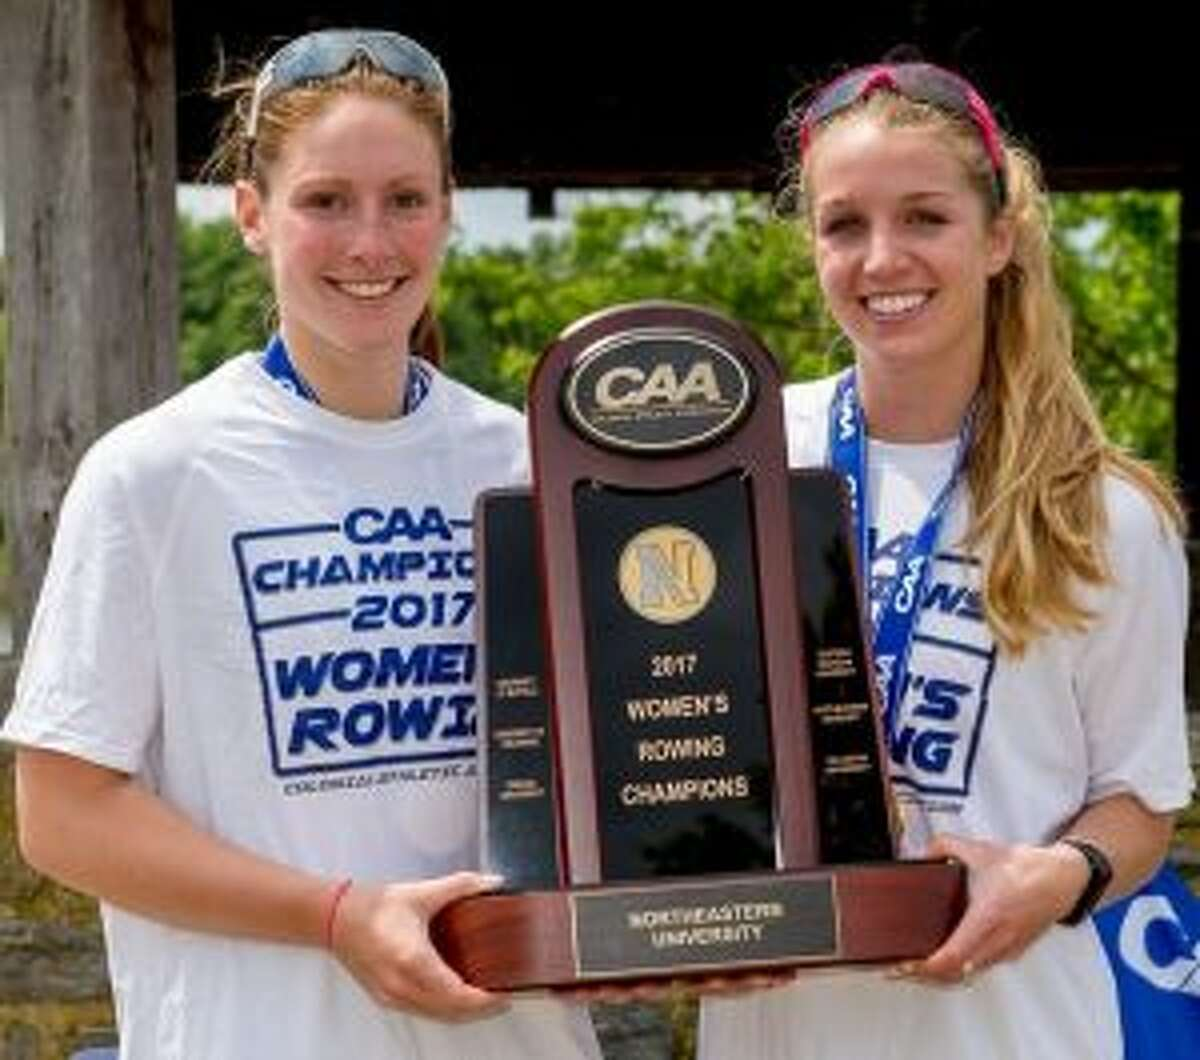 Maggie Walsh (left) and fellow co-captain Heather Foti accept Northeastern's first place trophy at the May 2017 Colonial Athletic Association Championships. It was the fourth straight CAA Championship for coach Joe Wilhelm's Huskies.